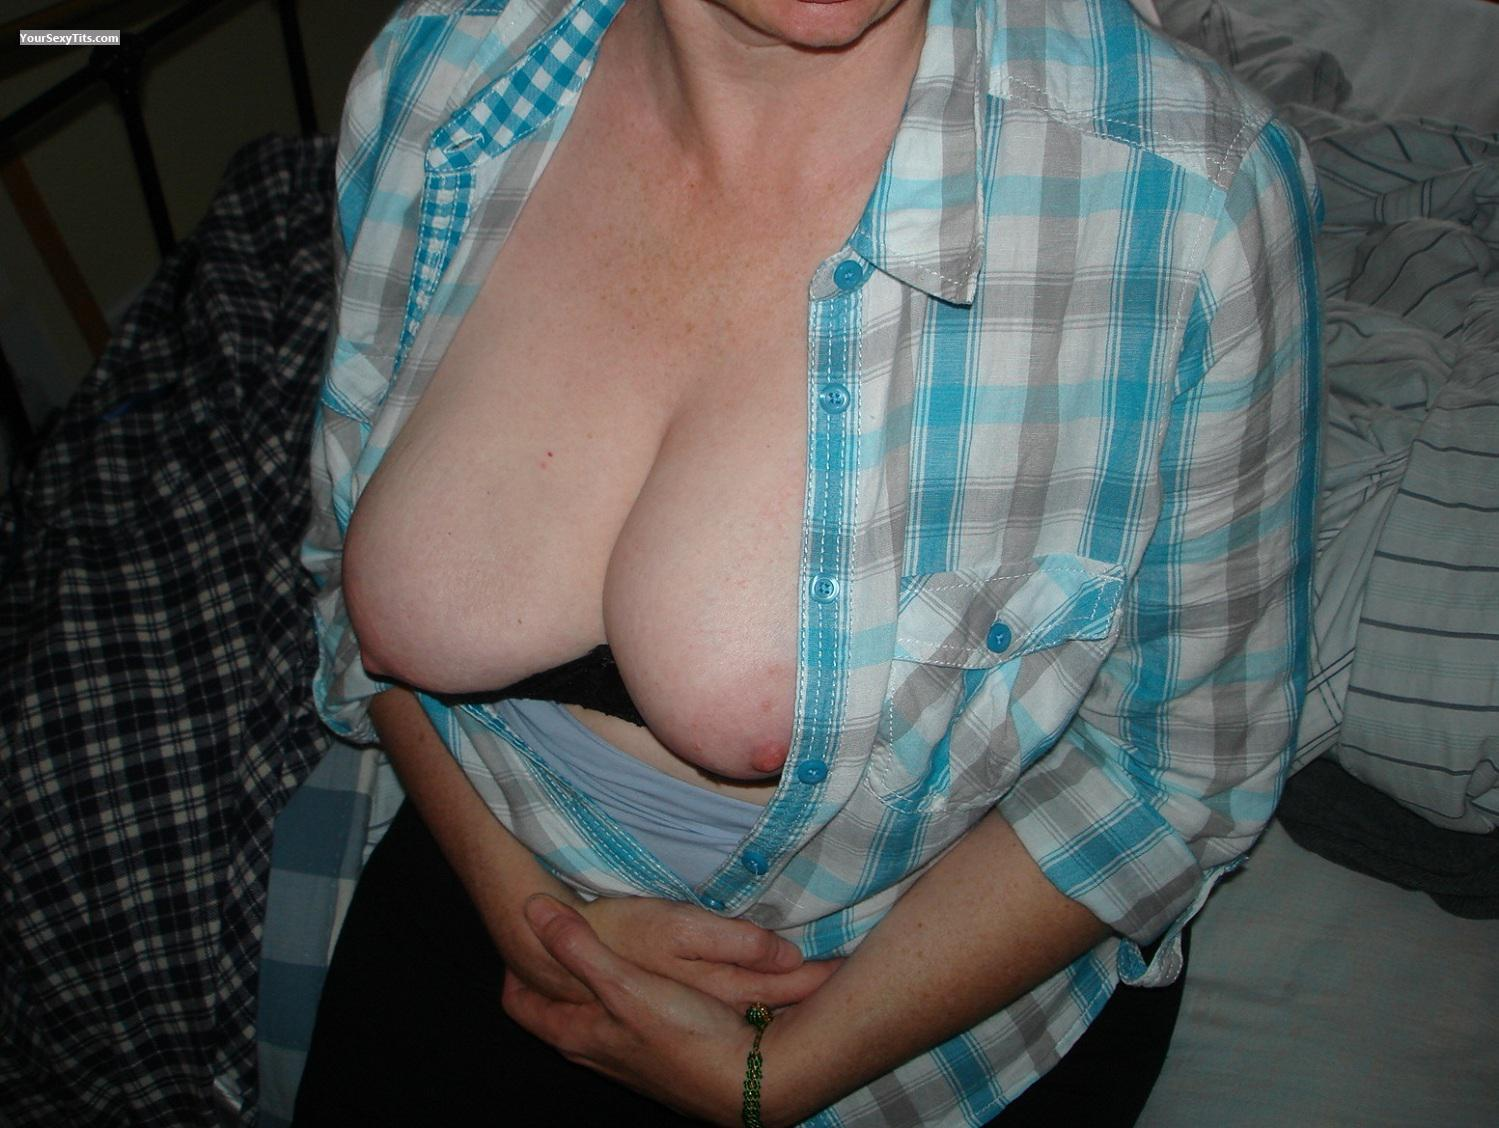 Tit Flash: Big Tits - Sbuk22 from United States